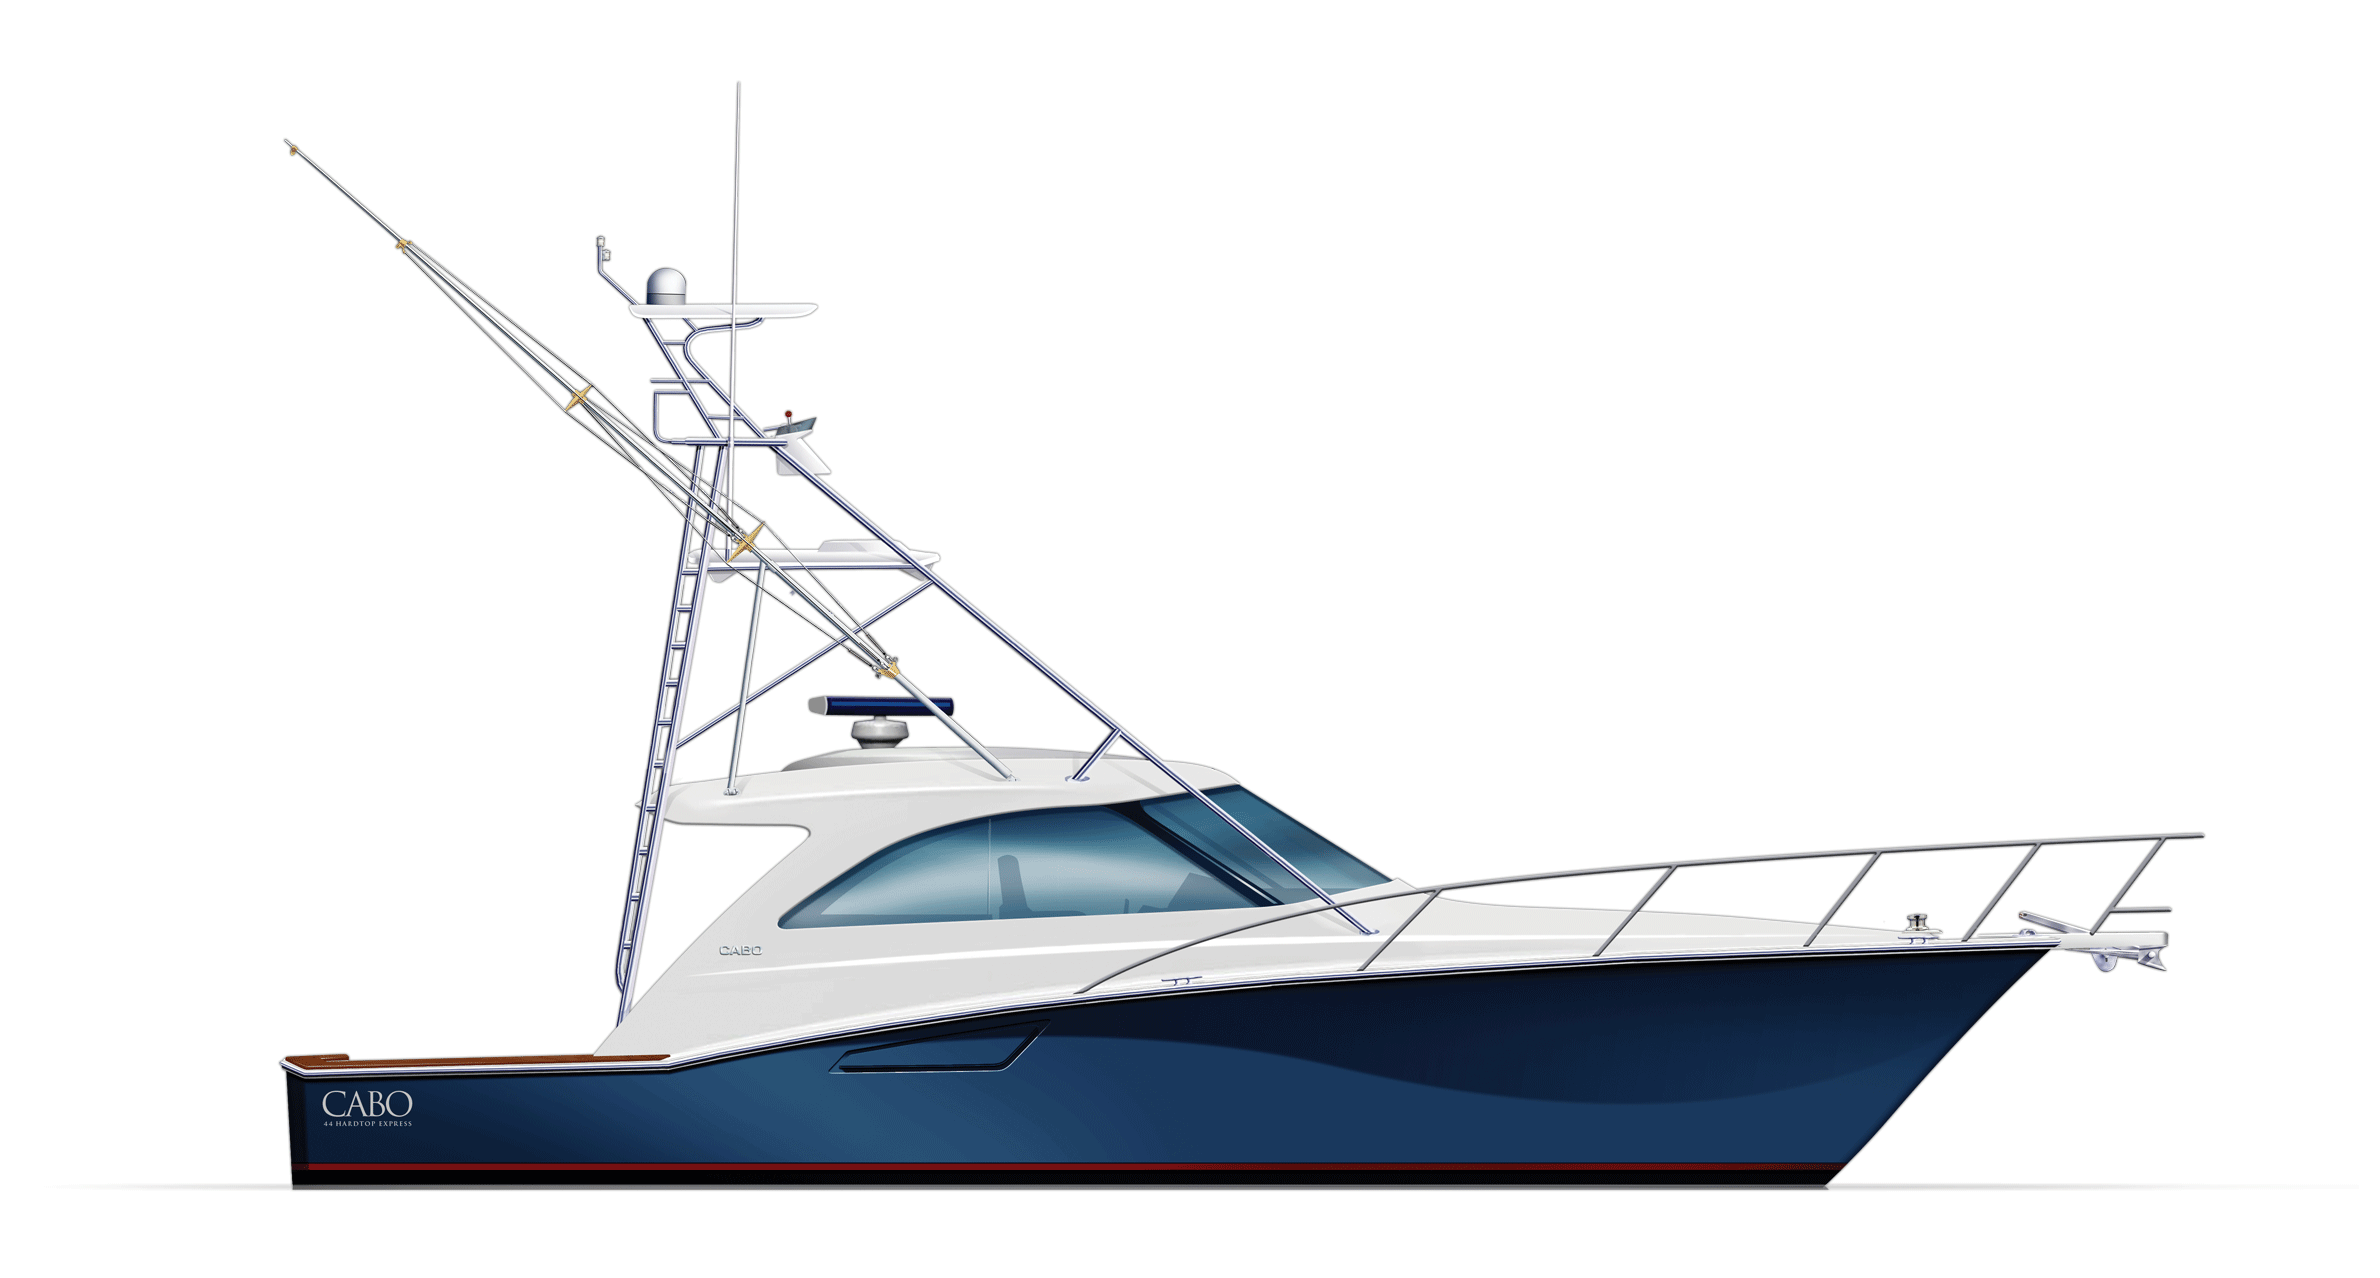 14 Ski Boat Icon.png Images